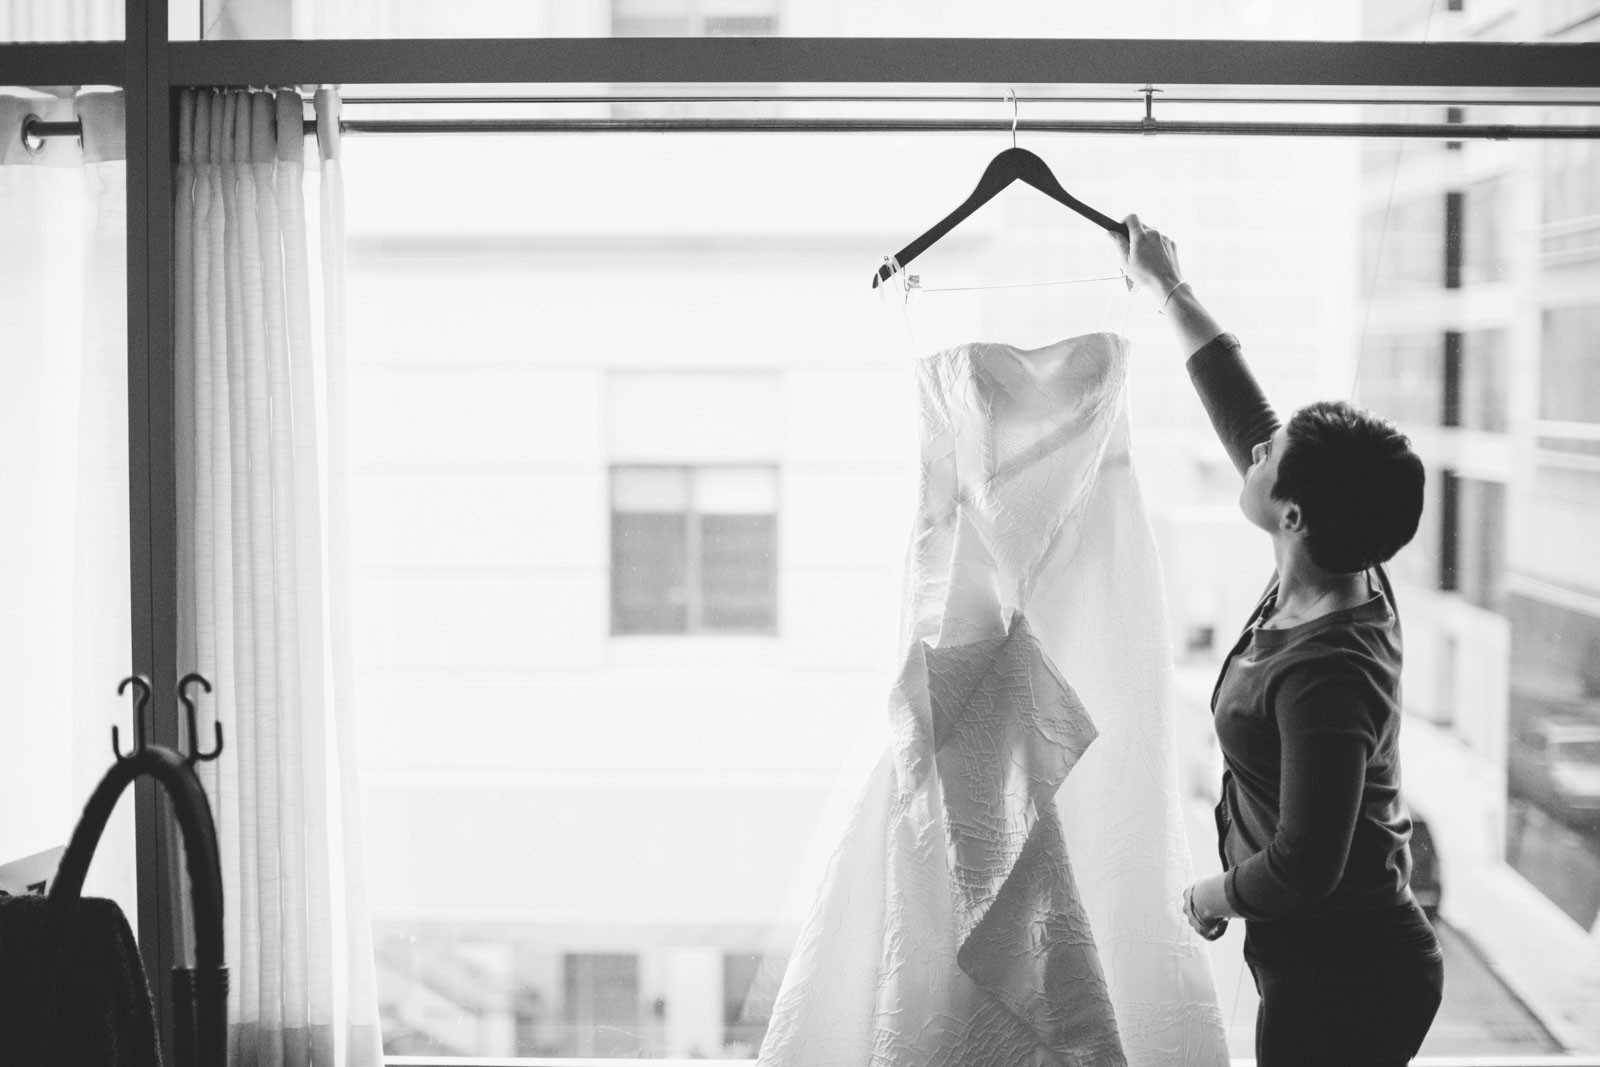 Black and white silhouette of bride taking down wedding dress from hanger in front of window